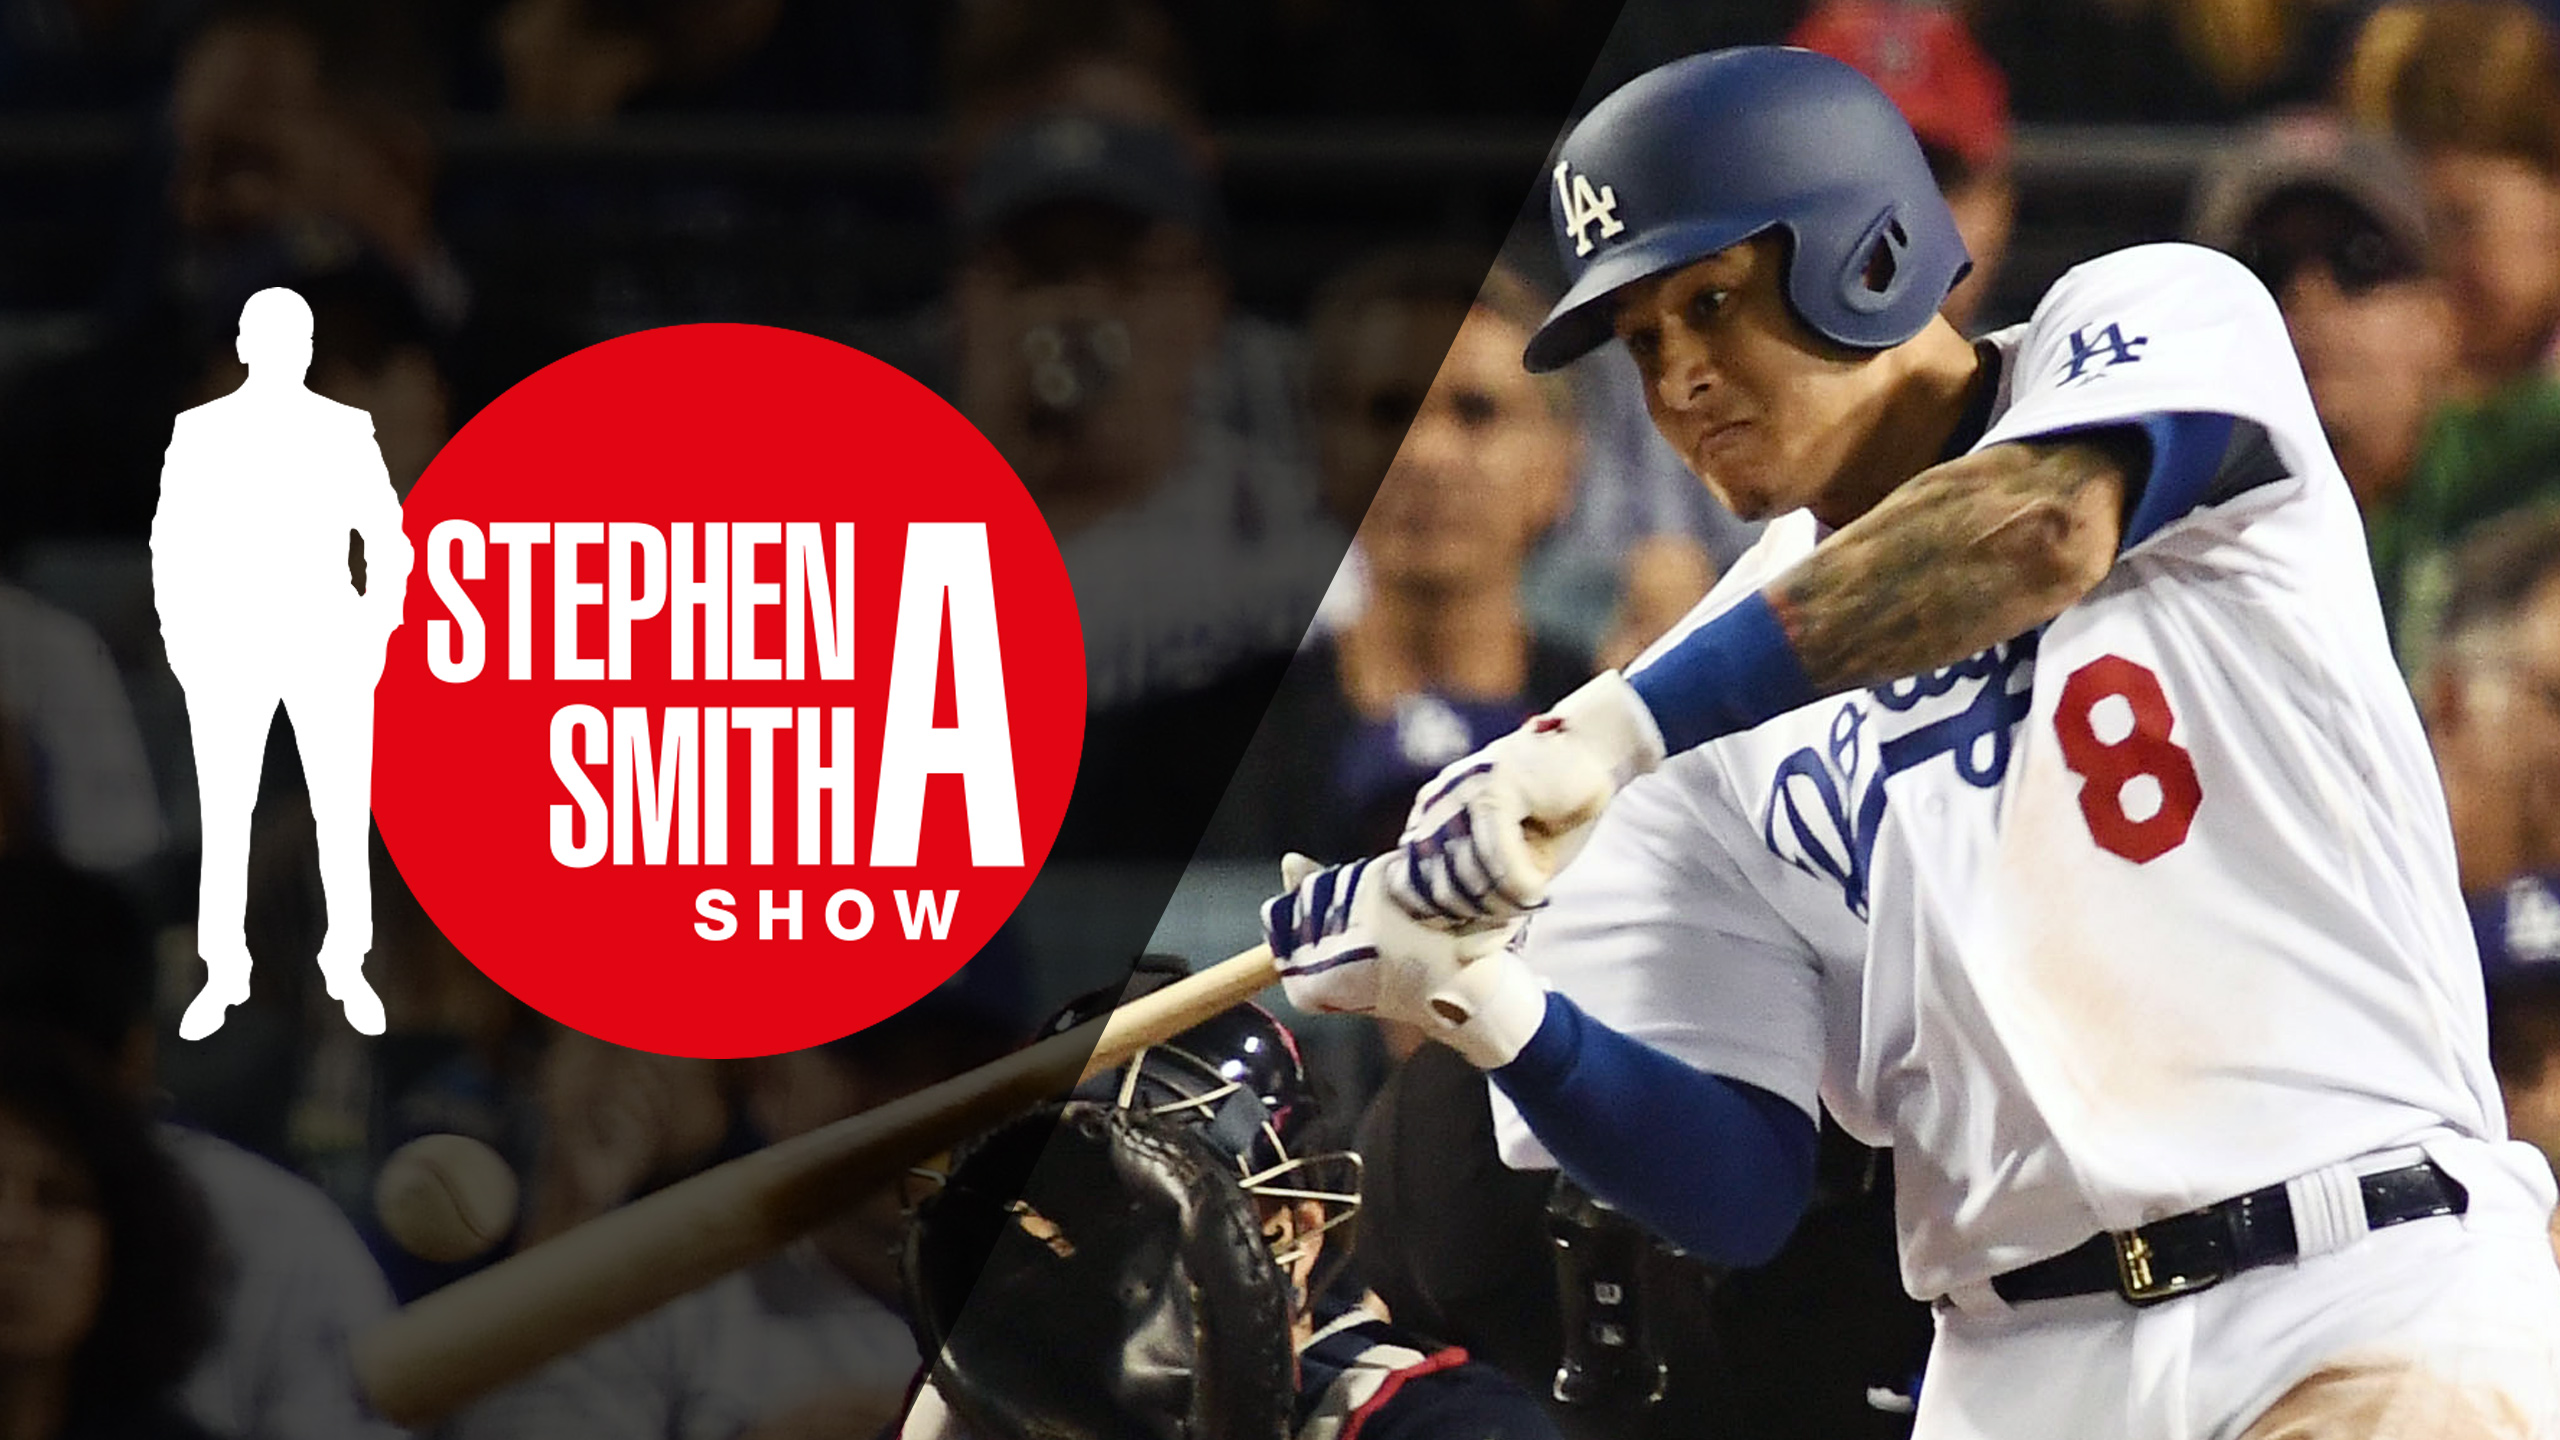 Tue, 2/19 - The Stephen A. Smith Show Presented by Progressive